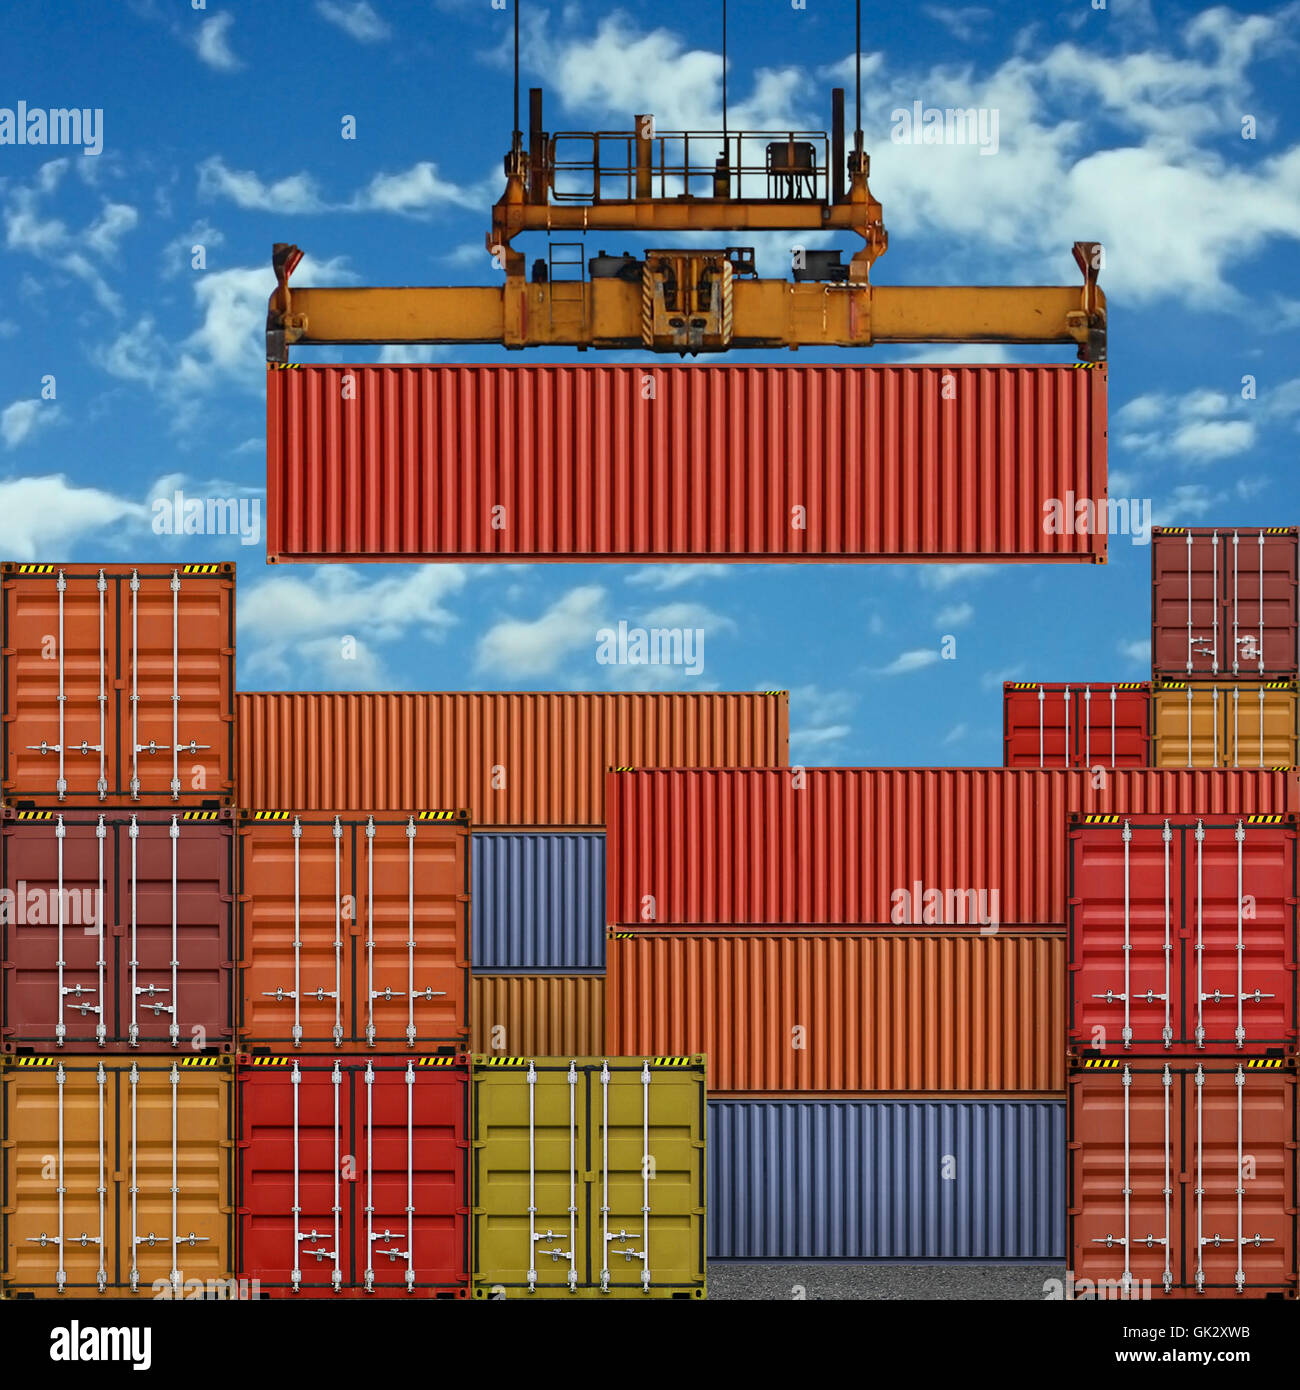 container freight shipping - Stock Image